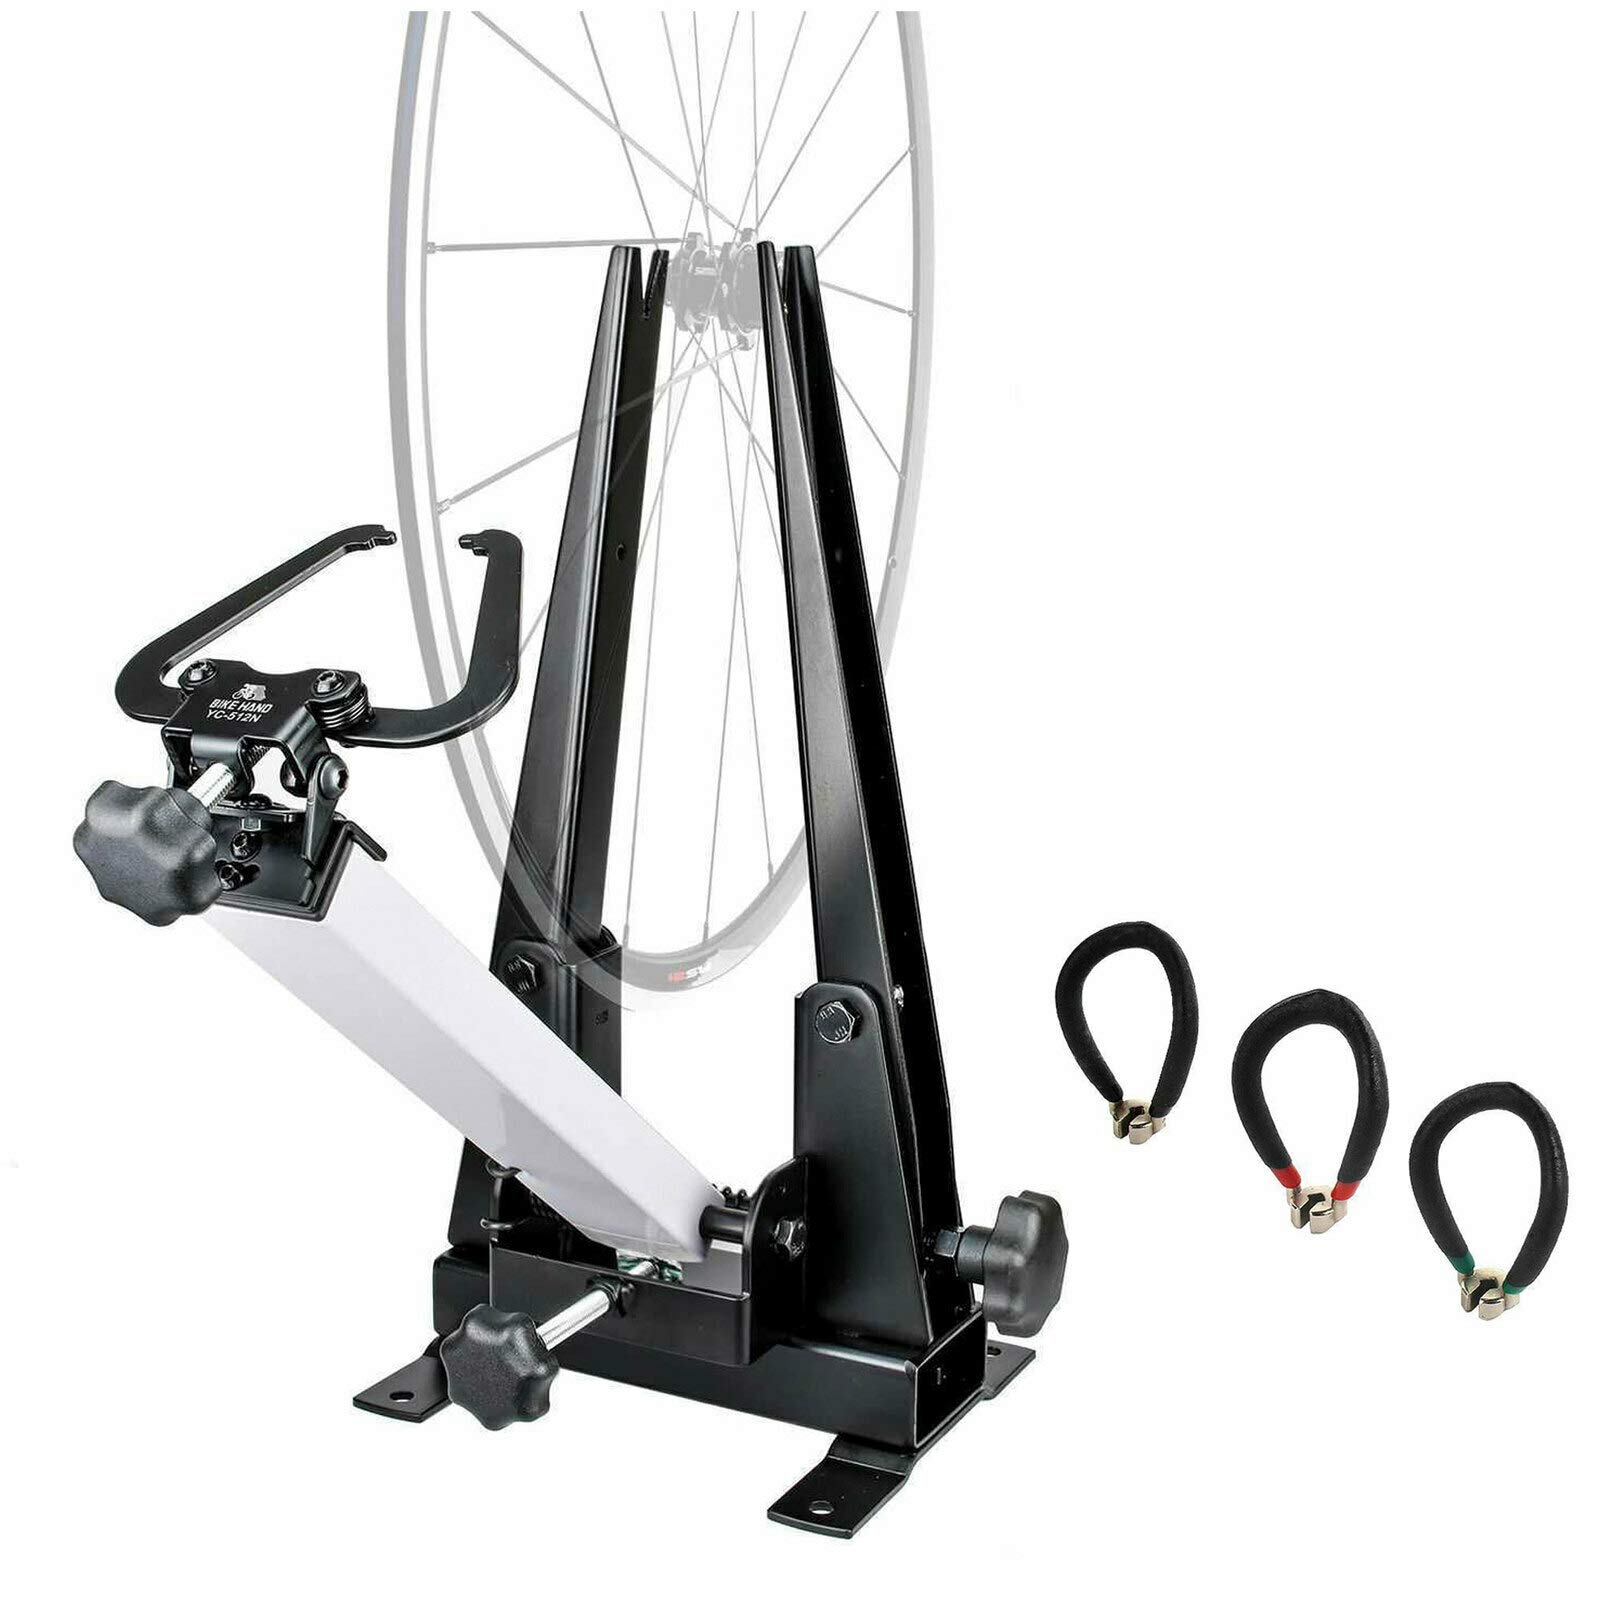 Bikehand Bike Wheel Professional Truing Stand Bicycle Wheel Maintenance - Great Tool for Rim Truing with Free Spoke Wrenches and Heavy Duty Base by Bikehand